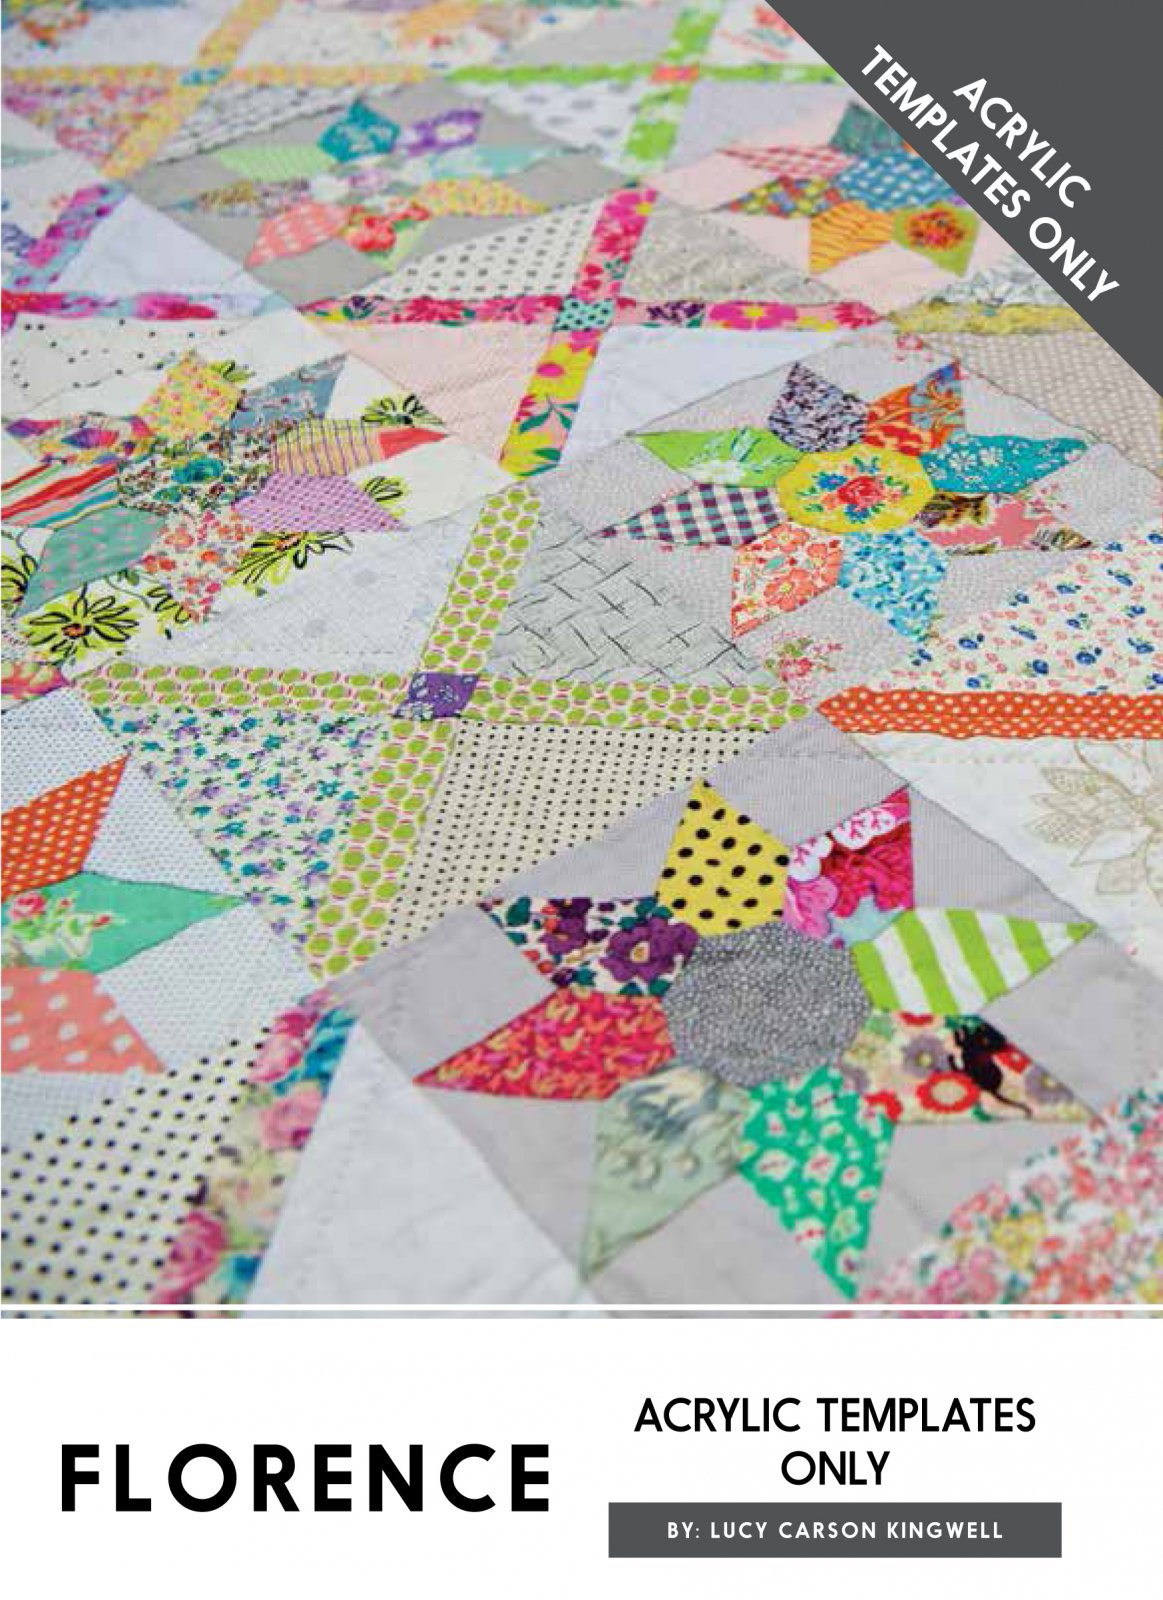 Florence Acrylic Templates Only by Lucy Carson Kingwell for Jen Kingwell Designs